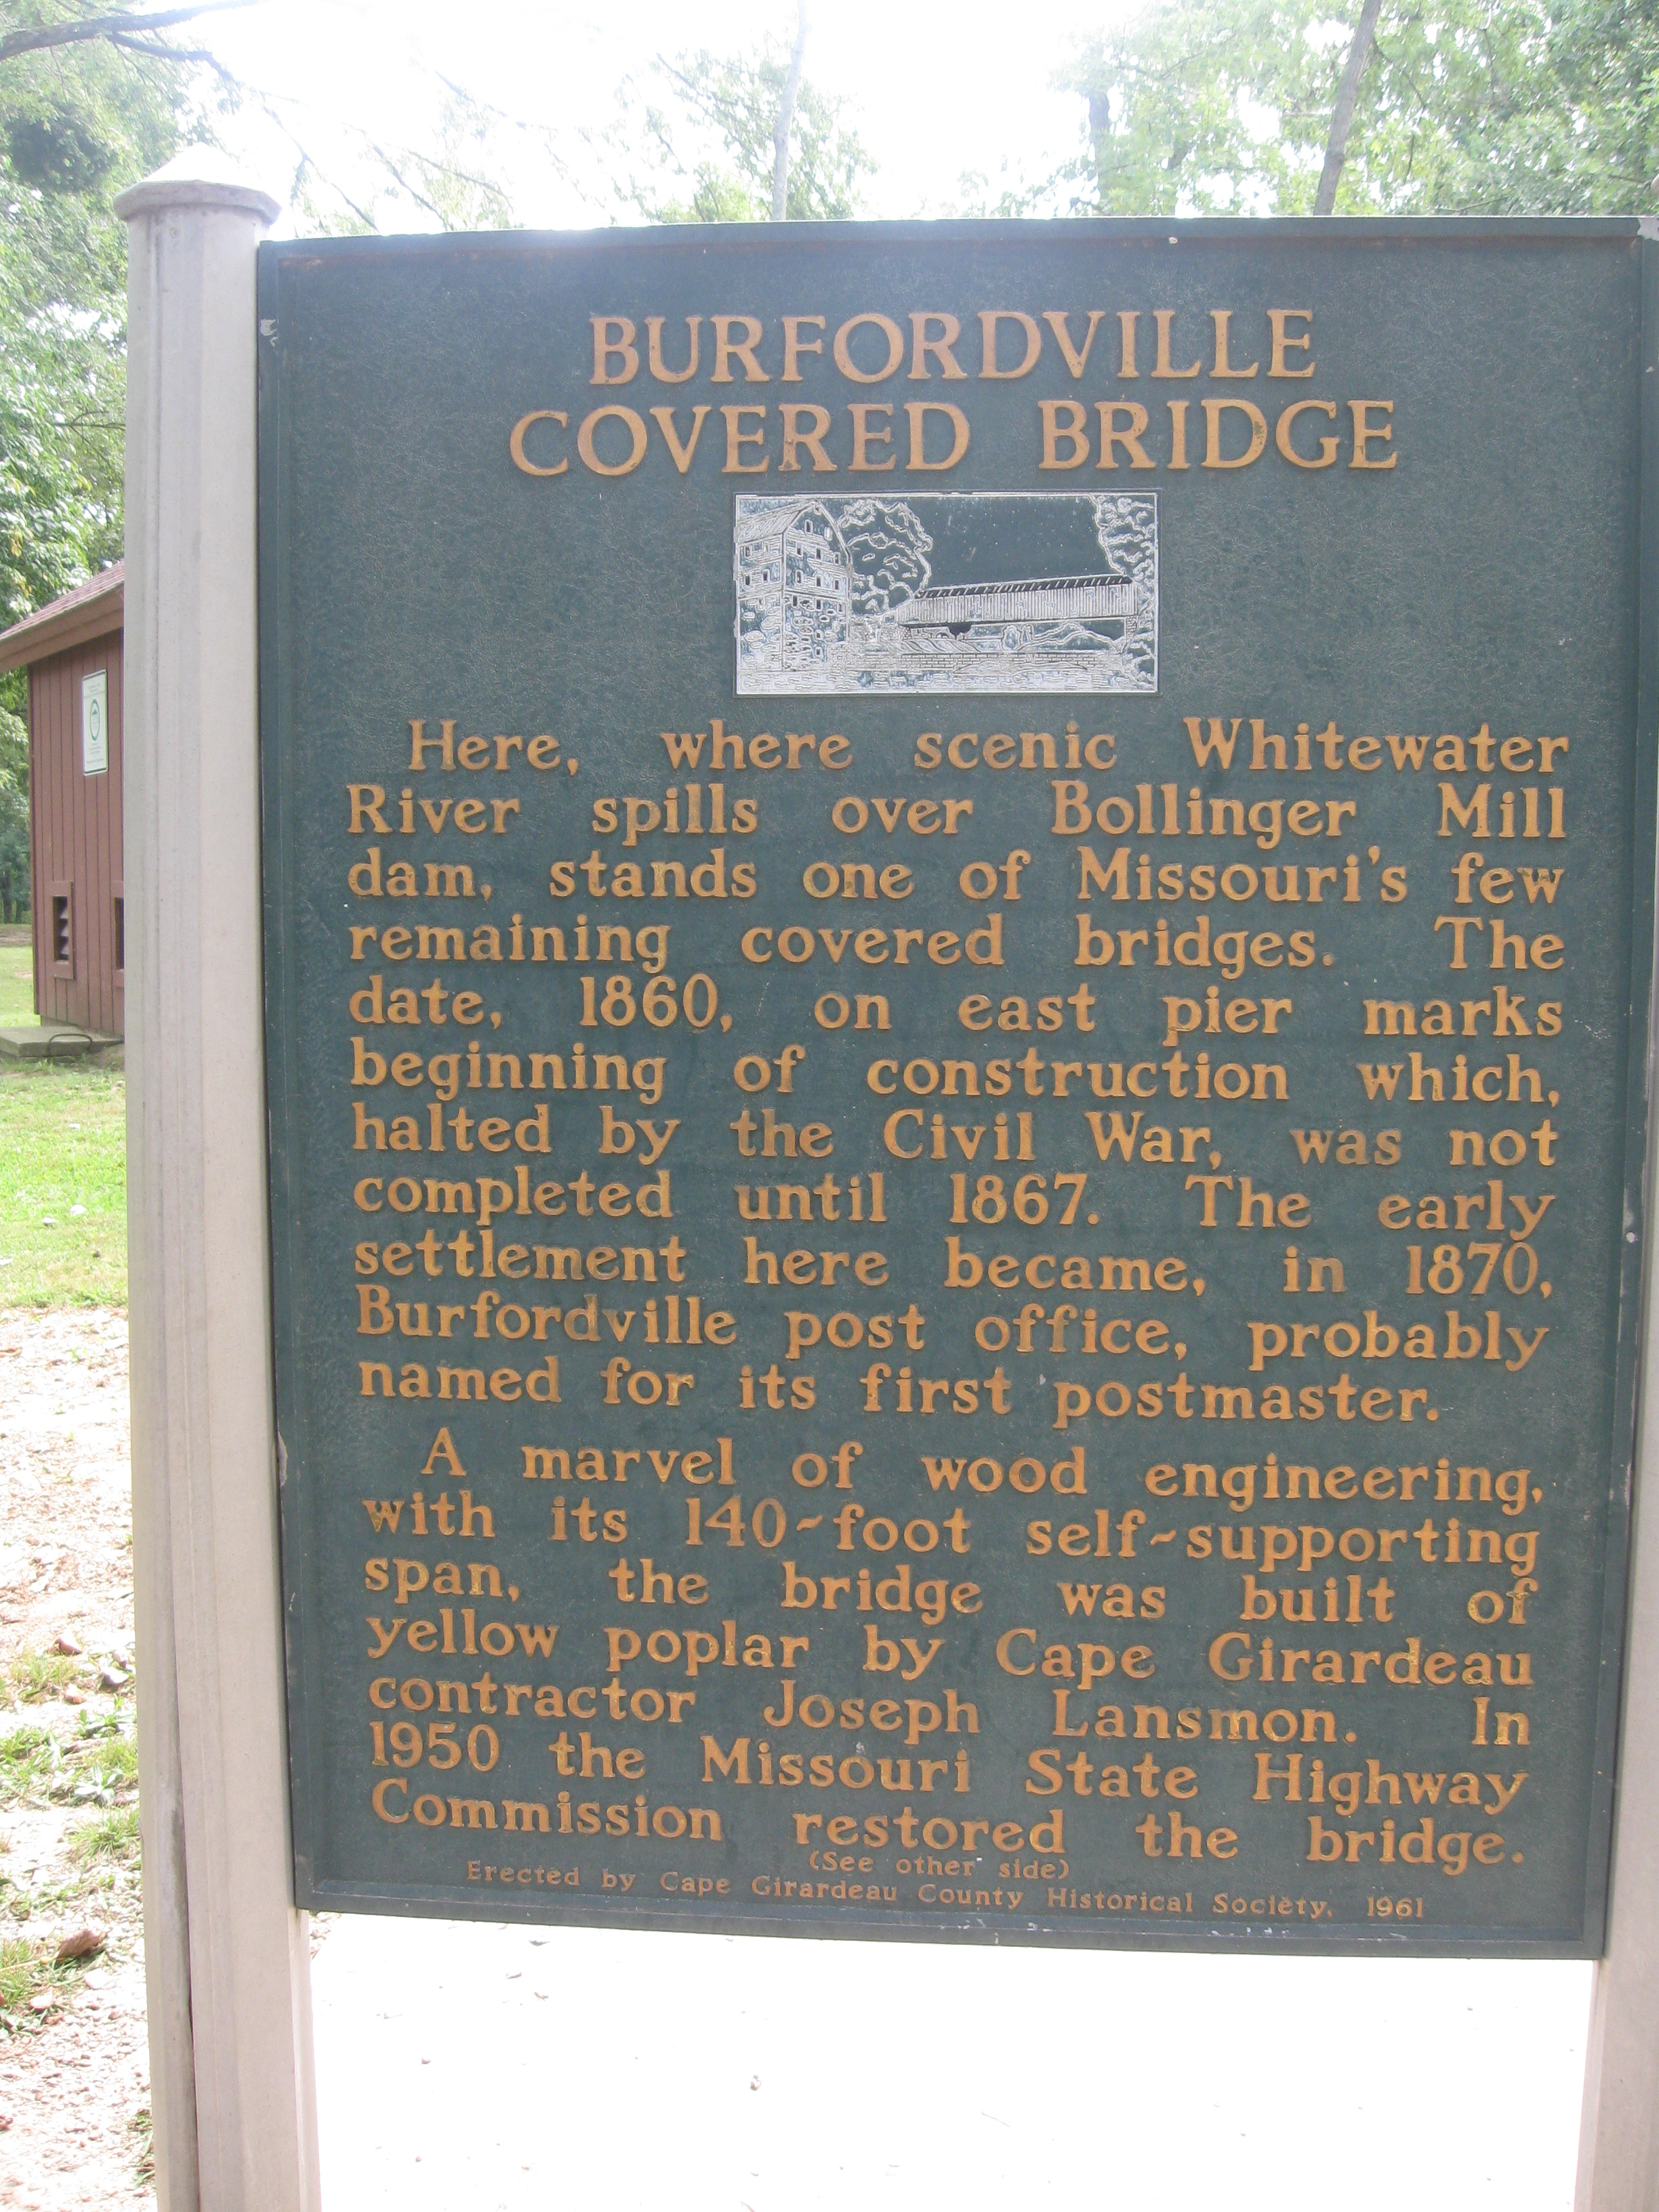 burfordville dating Death record and obituary for gene mayfield from burfordville, missouri.